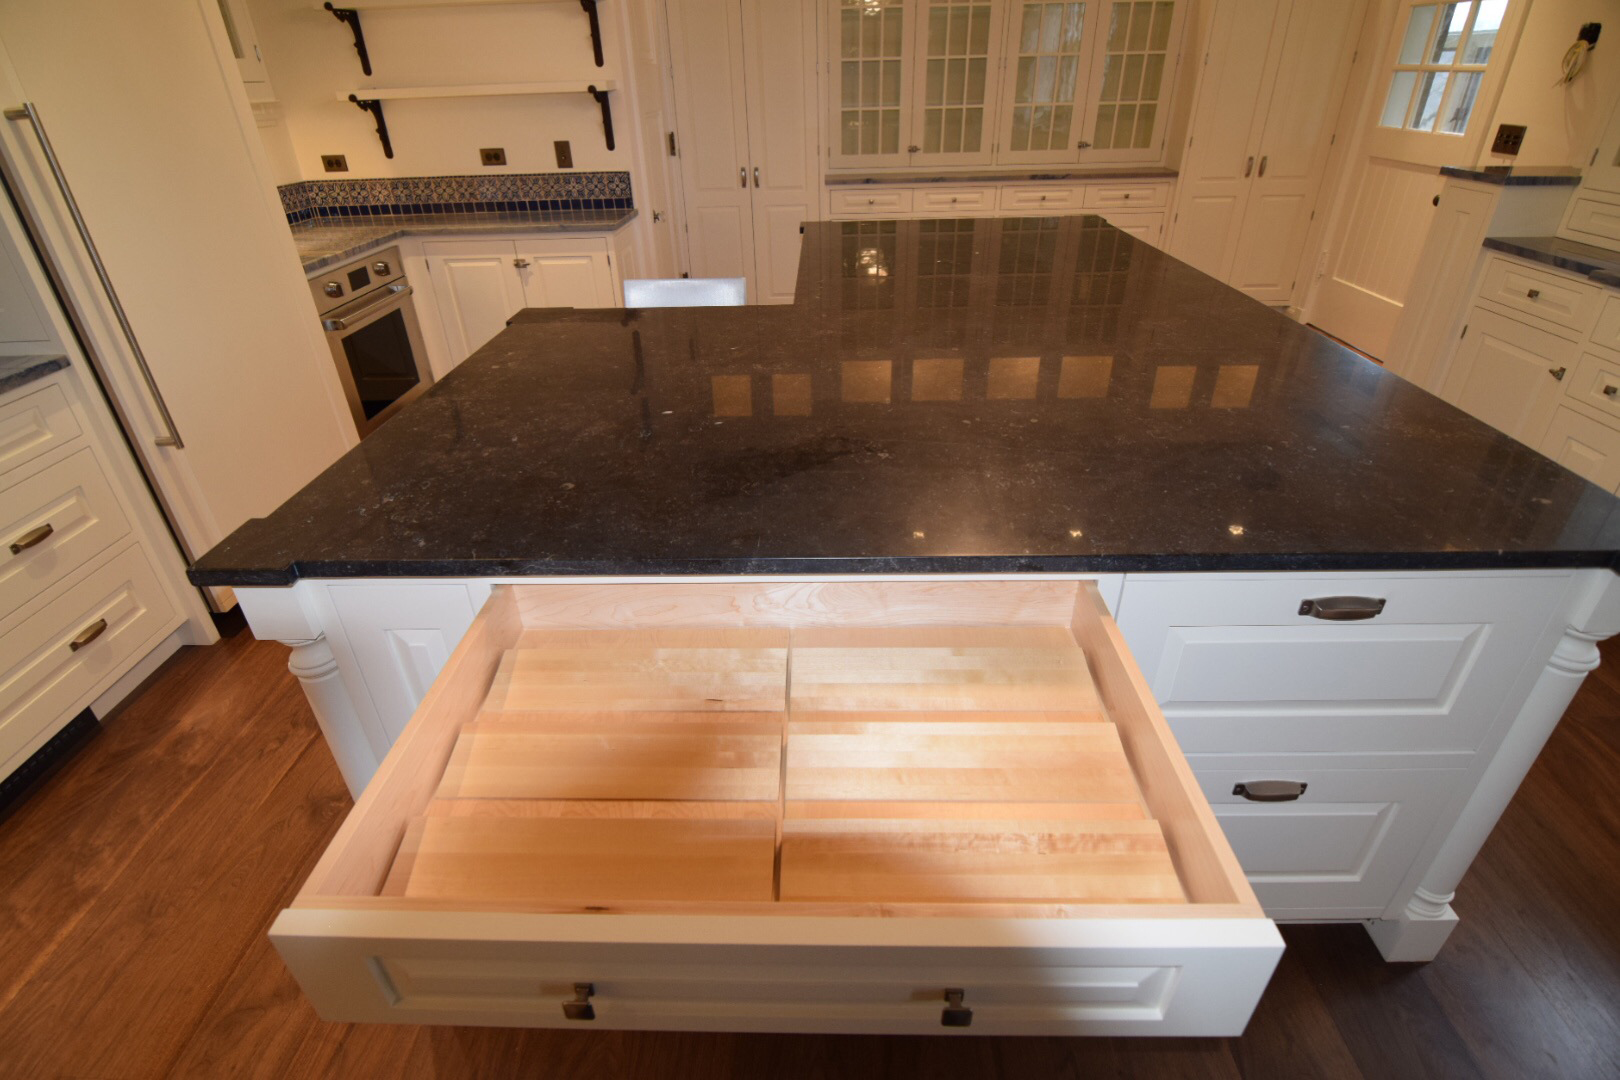 built-in-custom-divider-drawer-in-custom-white-lacquer-kitchen-with-hard-maple-face-frame-cabinetry-with-inset-doors-and-raised-panels.jpg